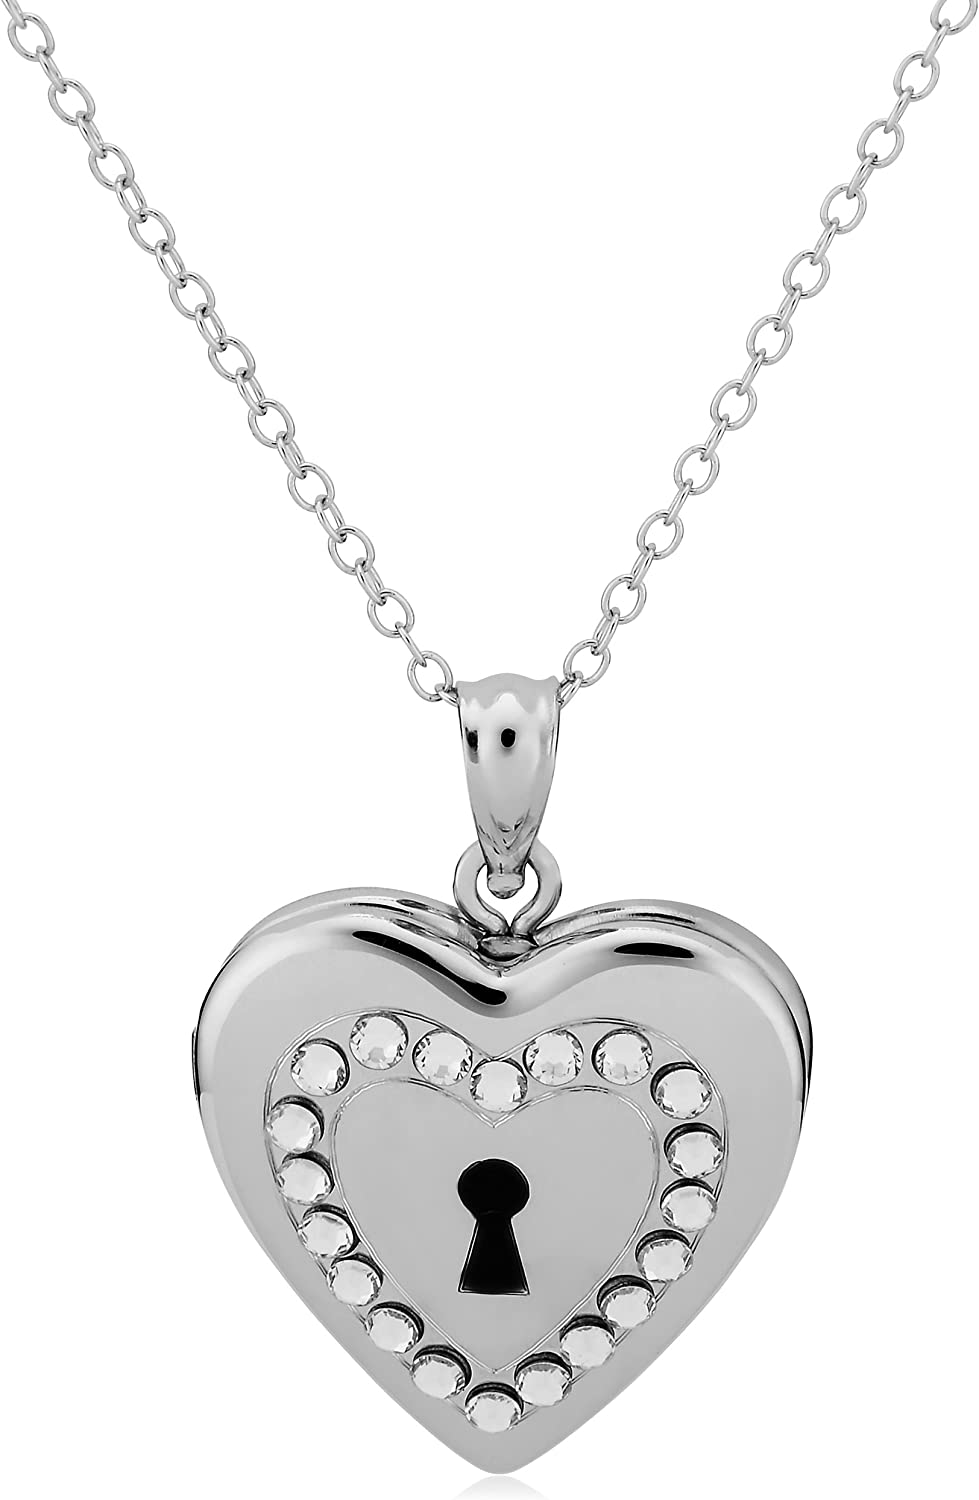 Sterling Silver Polished Heart Locket 18 inch silver chain and luxury gift box